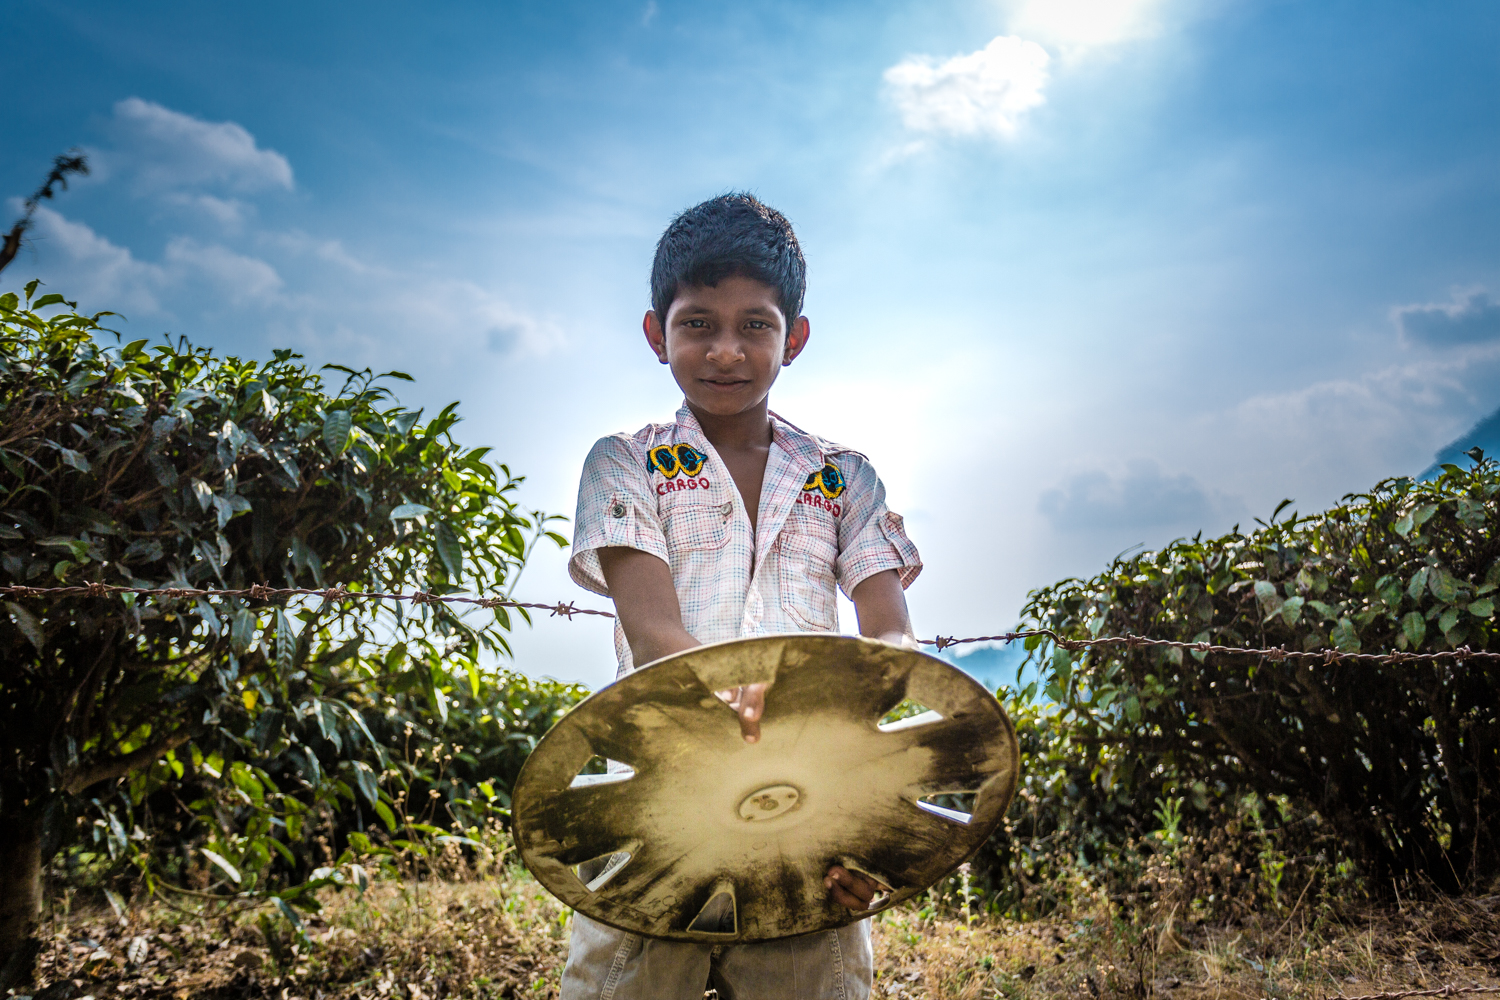 Villager playing with a hubcap near in a the plantation near Munnar, Kerala.